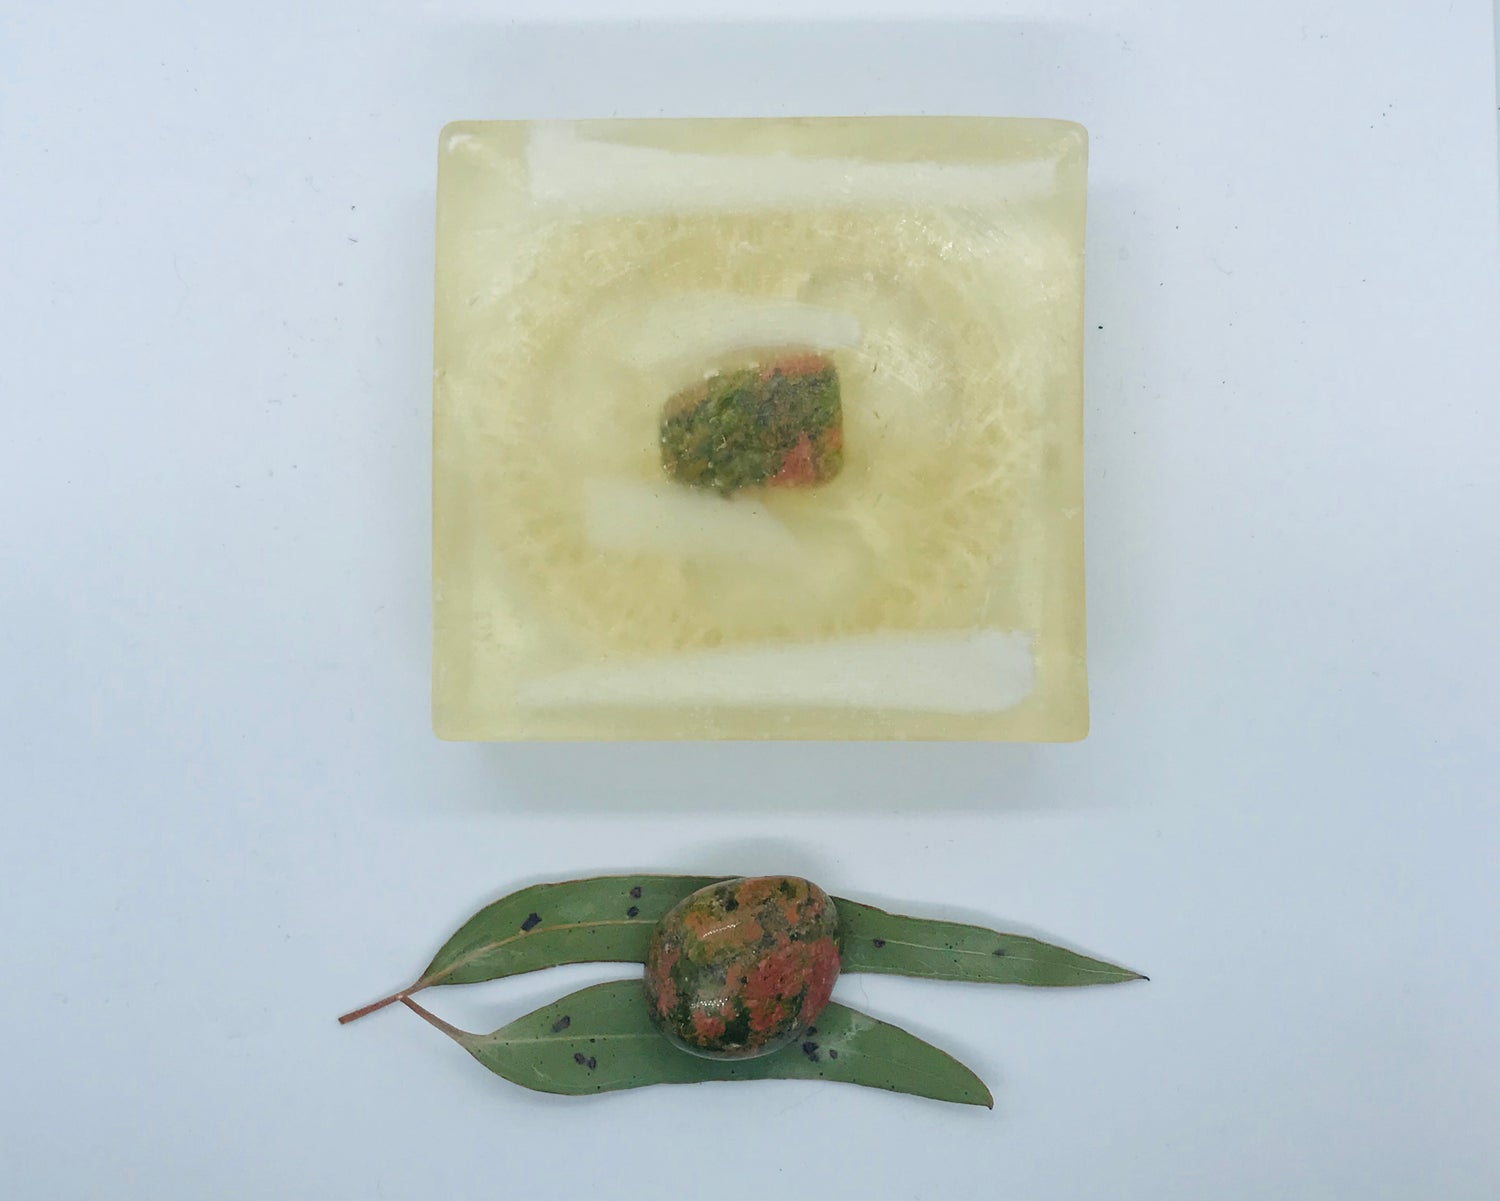 Unakite Soap with Loofah